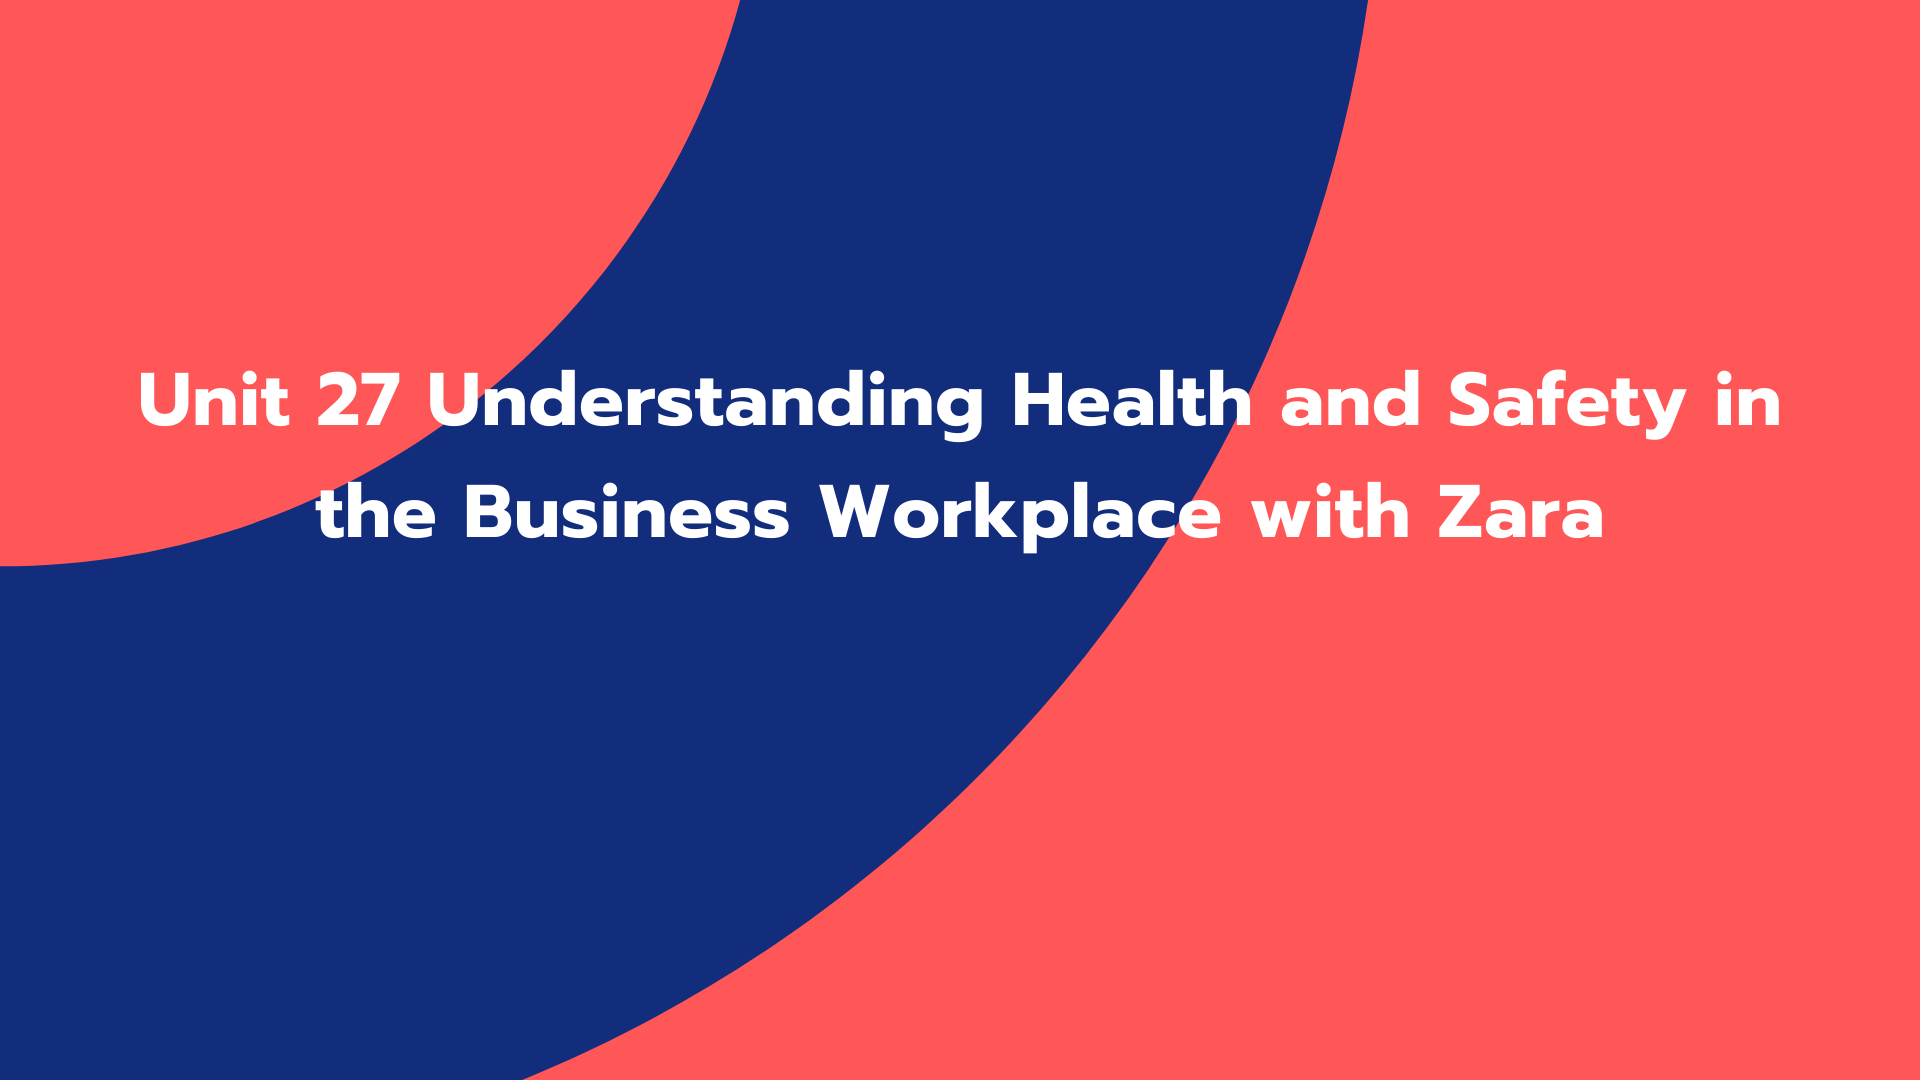 Unit 27 Understanding Health and Safety in the Business Workplace with Zara